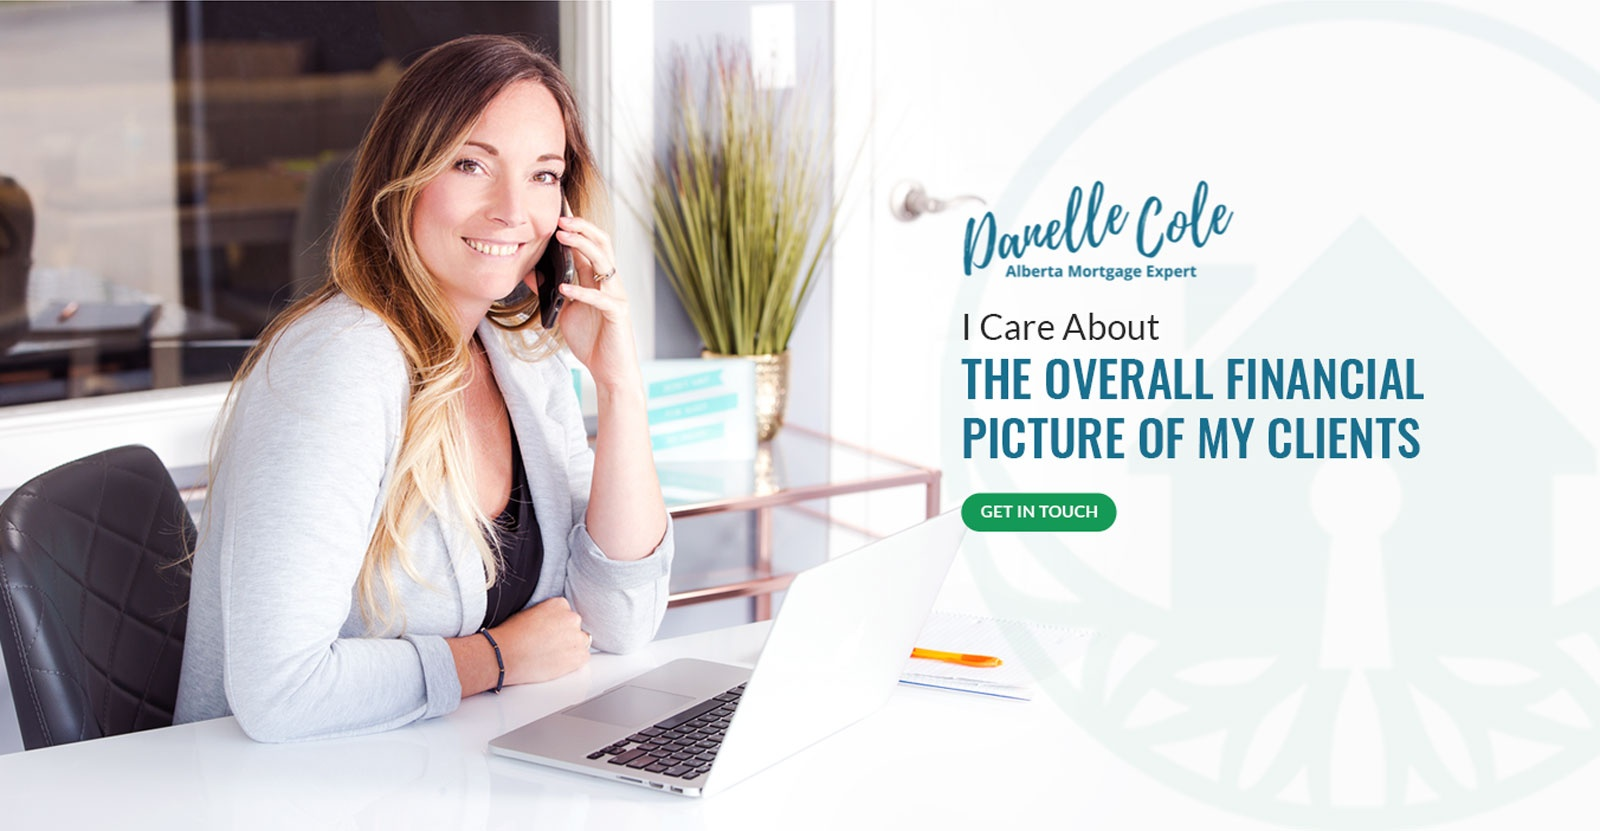 Alberta Mortgage Expert - Danelle Cole - The Place To Mortgage Inc.